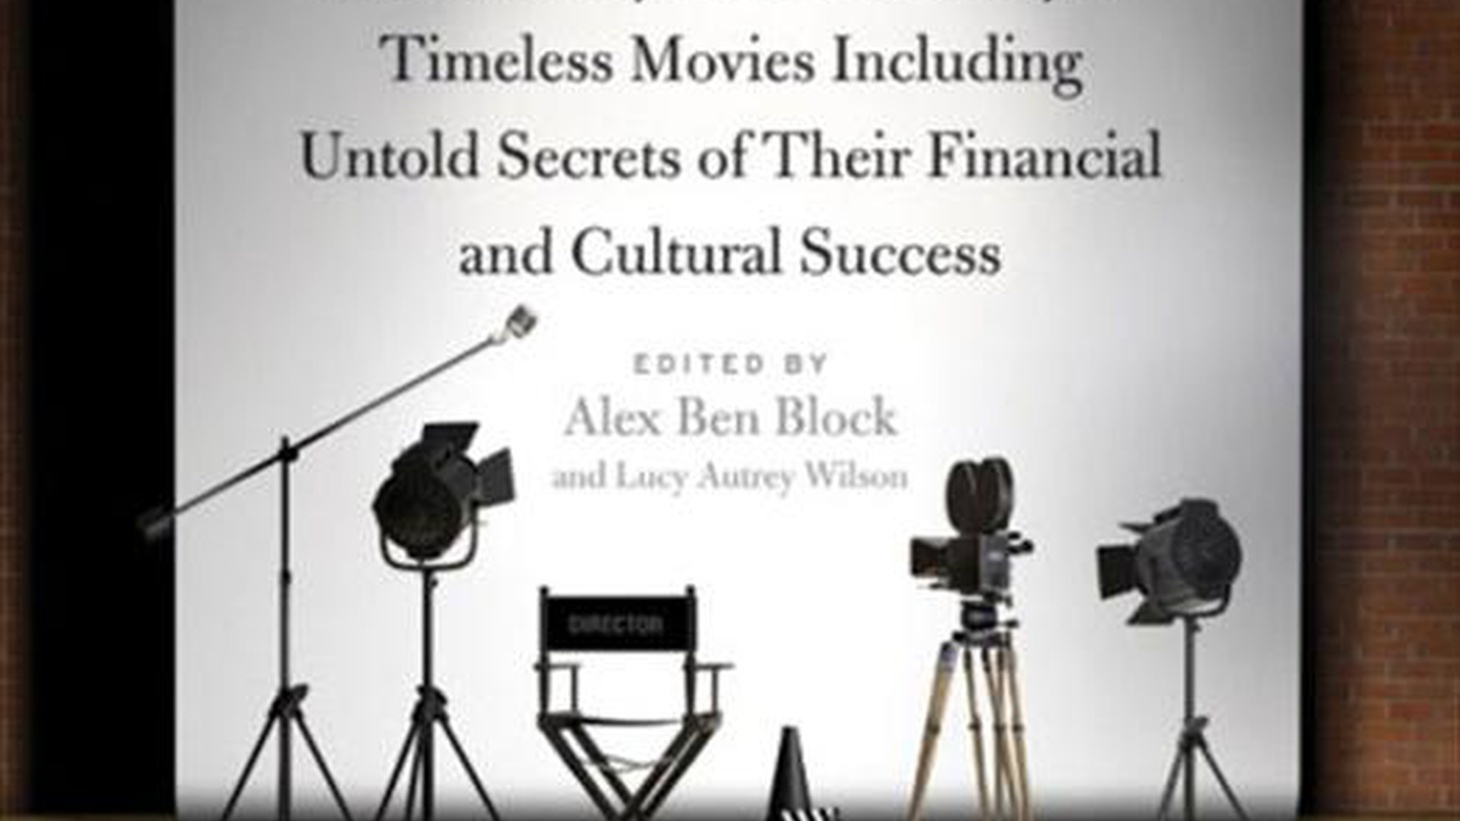 A hefty new book conceived by director George Lucas examines the DNA of 300 American blockbusters. We examine how the book was made and what we can learn from it. Plus, how far will you go to become a successful screenwriter? The Hurt Locker's Mark Boal went to Iraq.